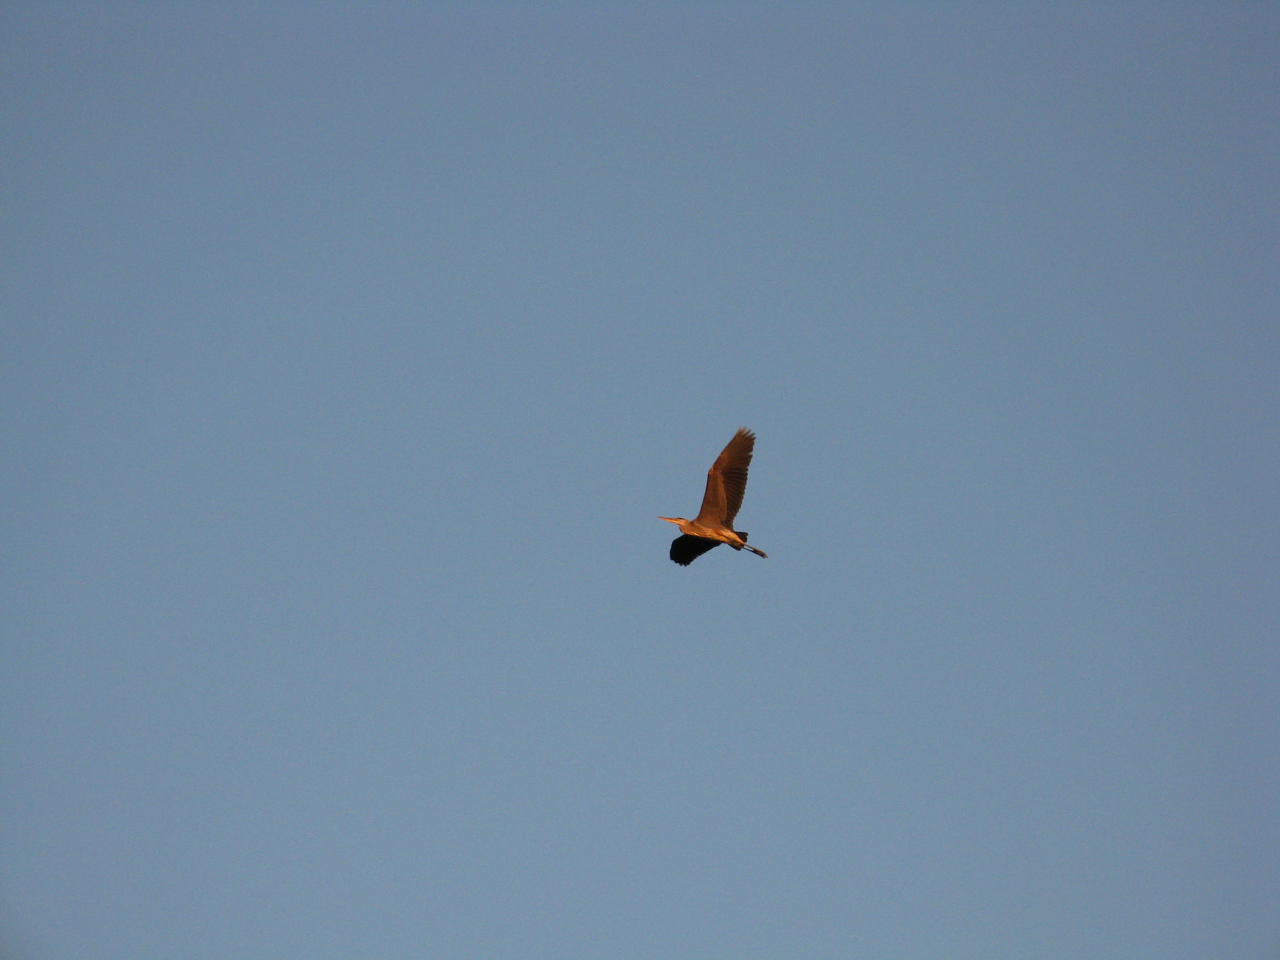 A heron flew over us while we were standing on the beach at Washington Park.